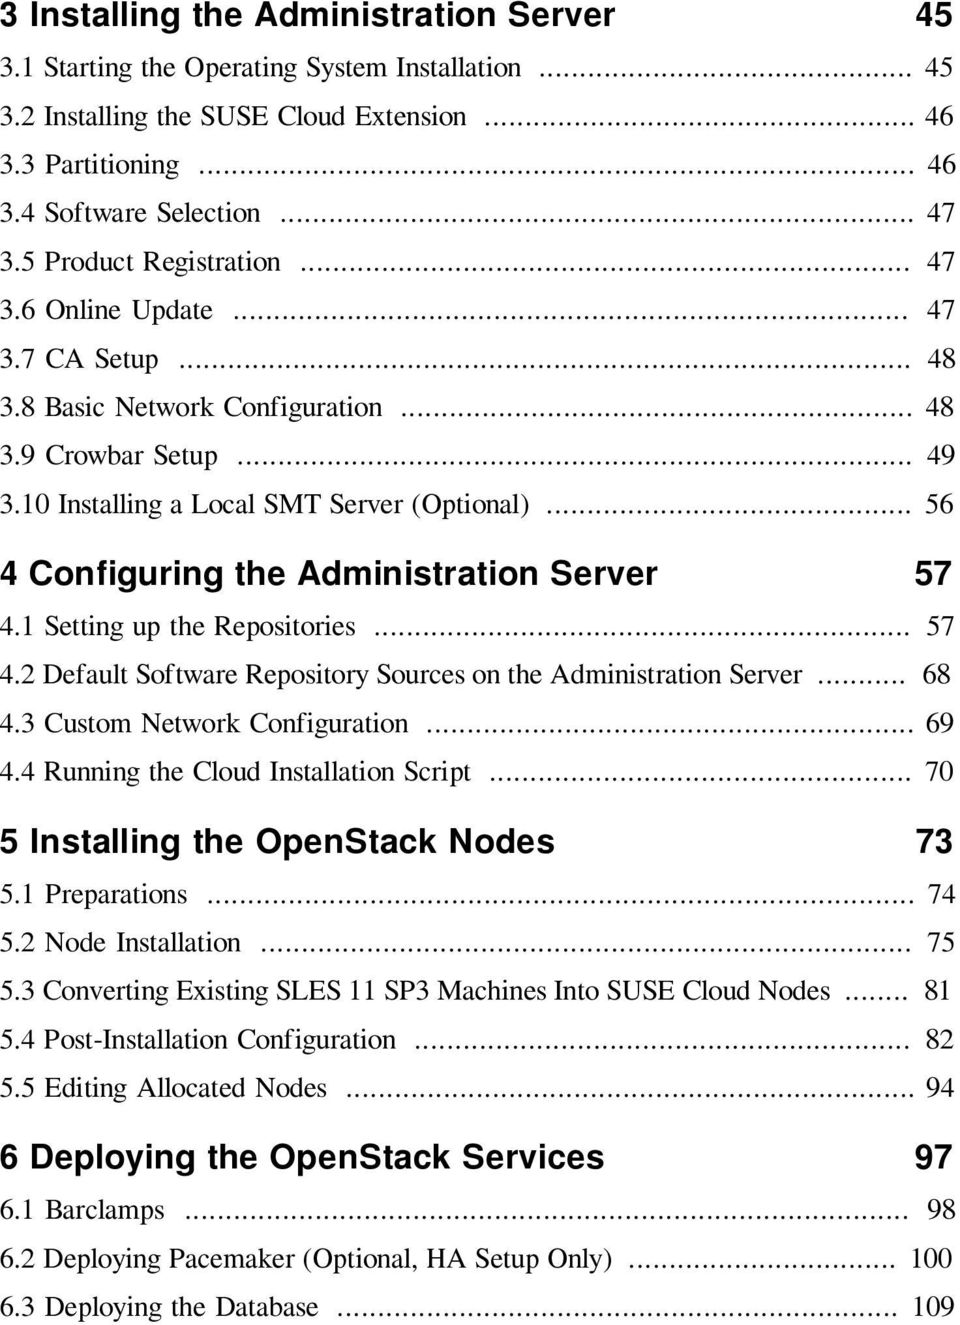 .. 56 4 Configuring the Administration Server 57 4.1 Setting up the Repositories... 57 4.2 Default Software Repository Sources on the Administration Server... 68 4.3 Custom Network Configuration.